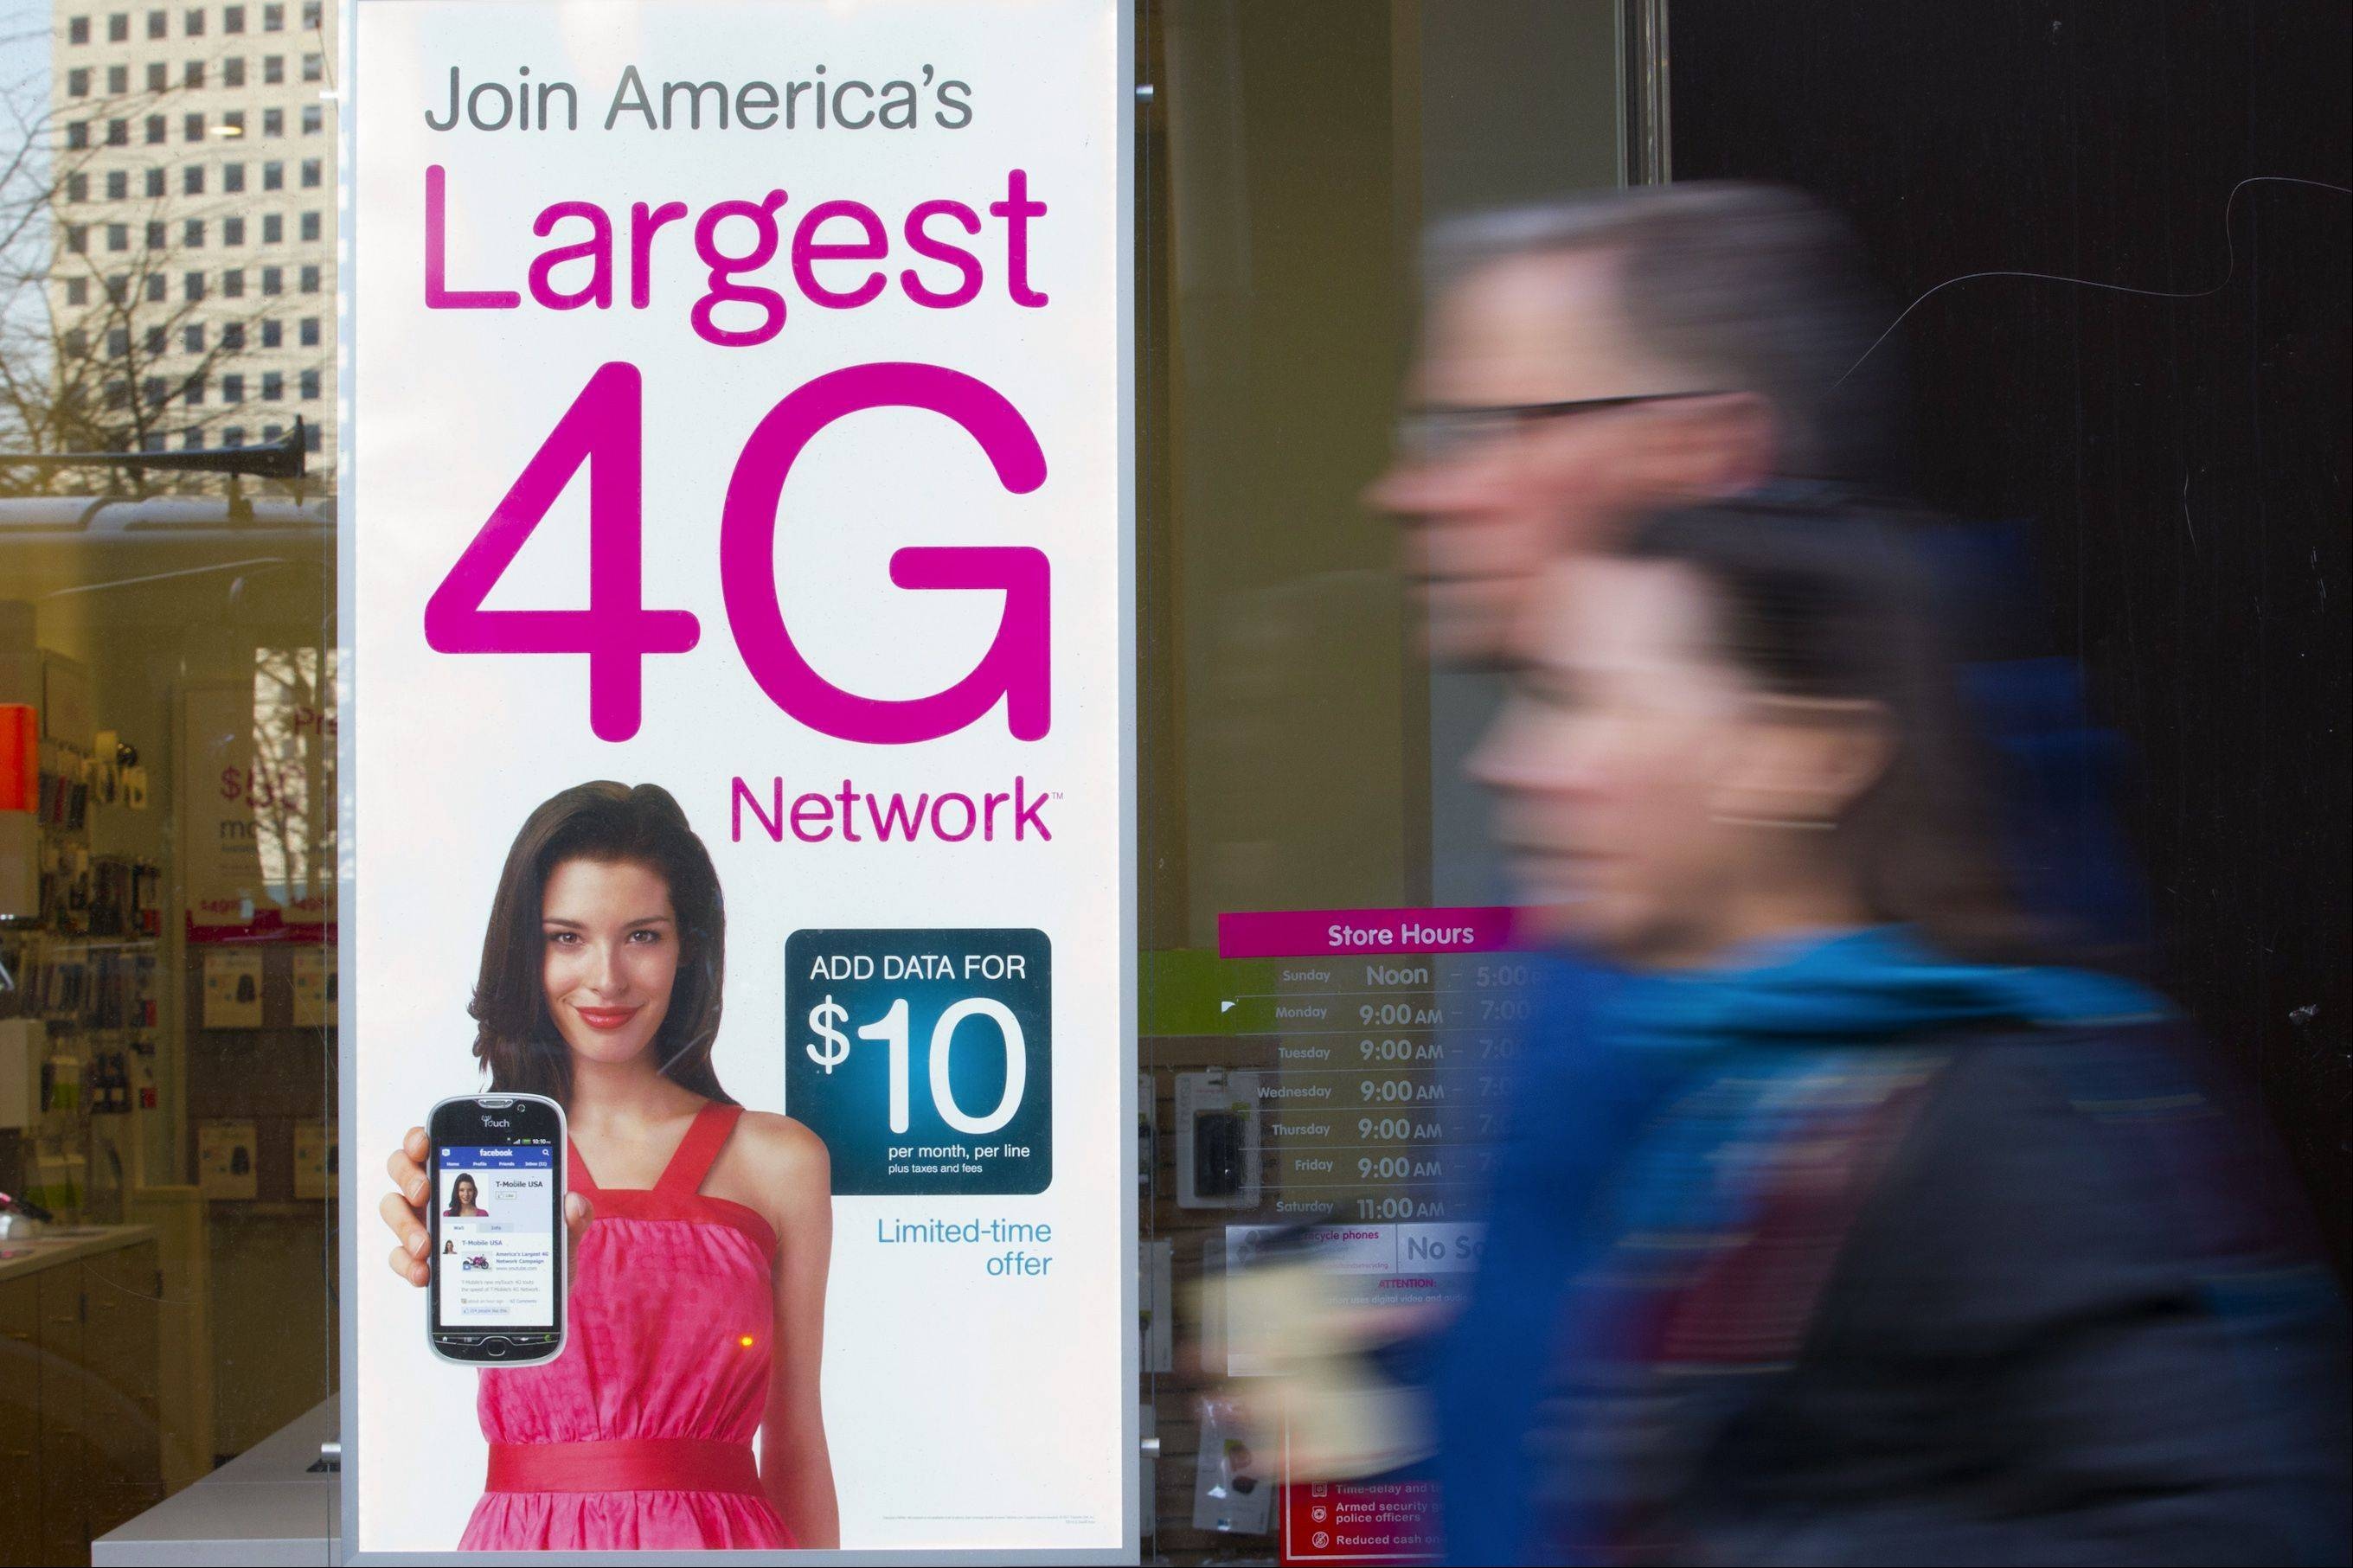 T-Mobile USA, the struggling No. 4 cellphone company, is ditching plans centered on familiar two-year contracts in favor of selling phones on installment plans.